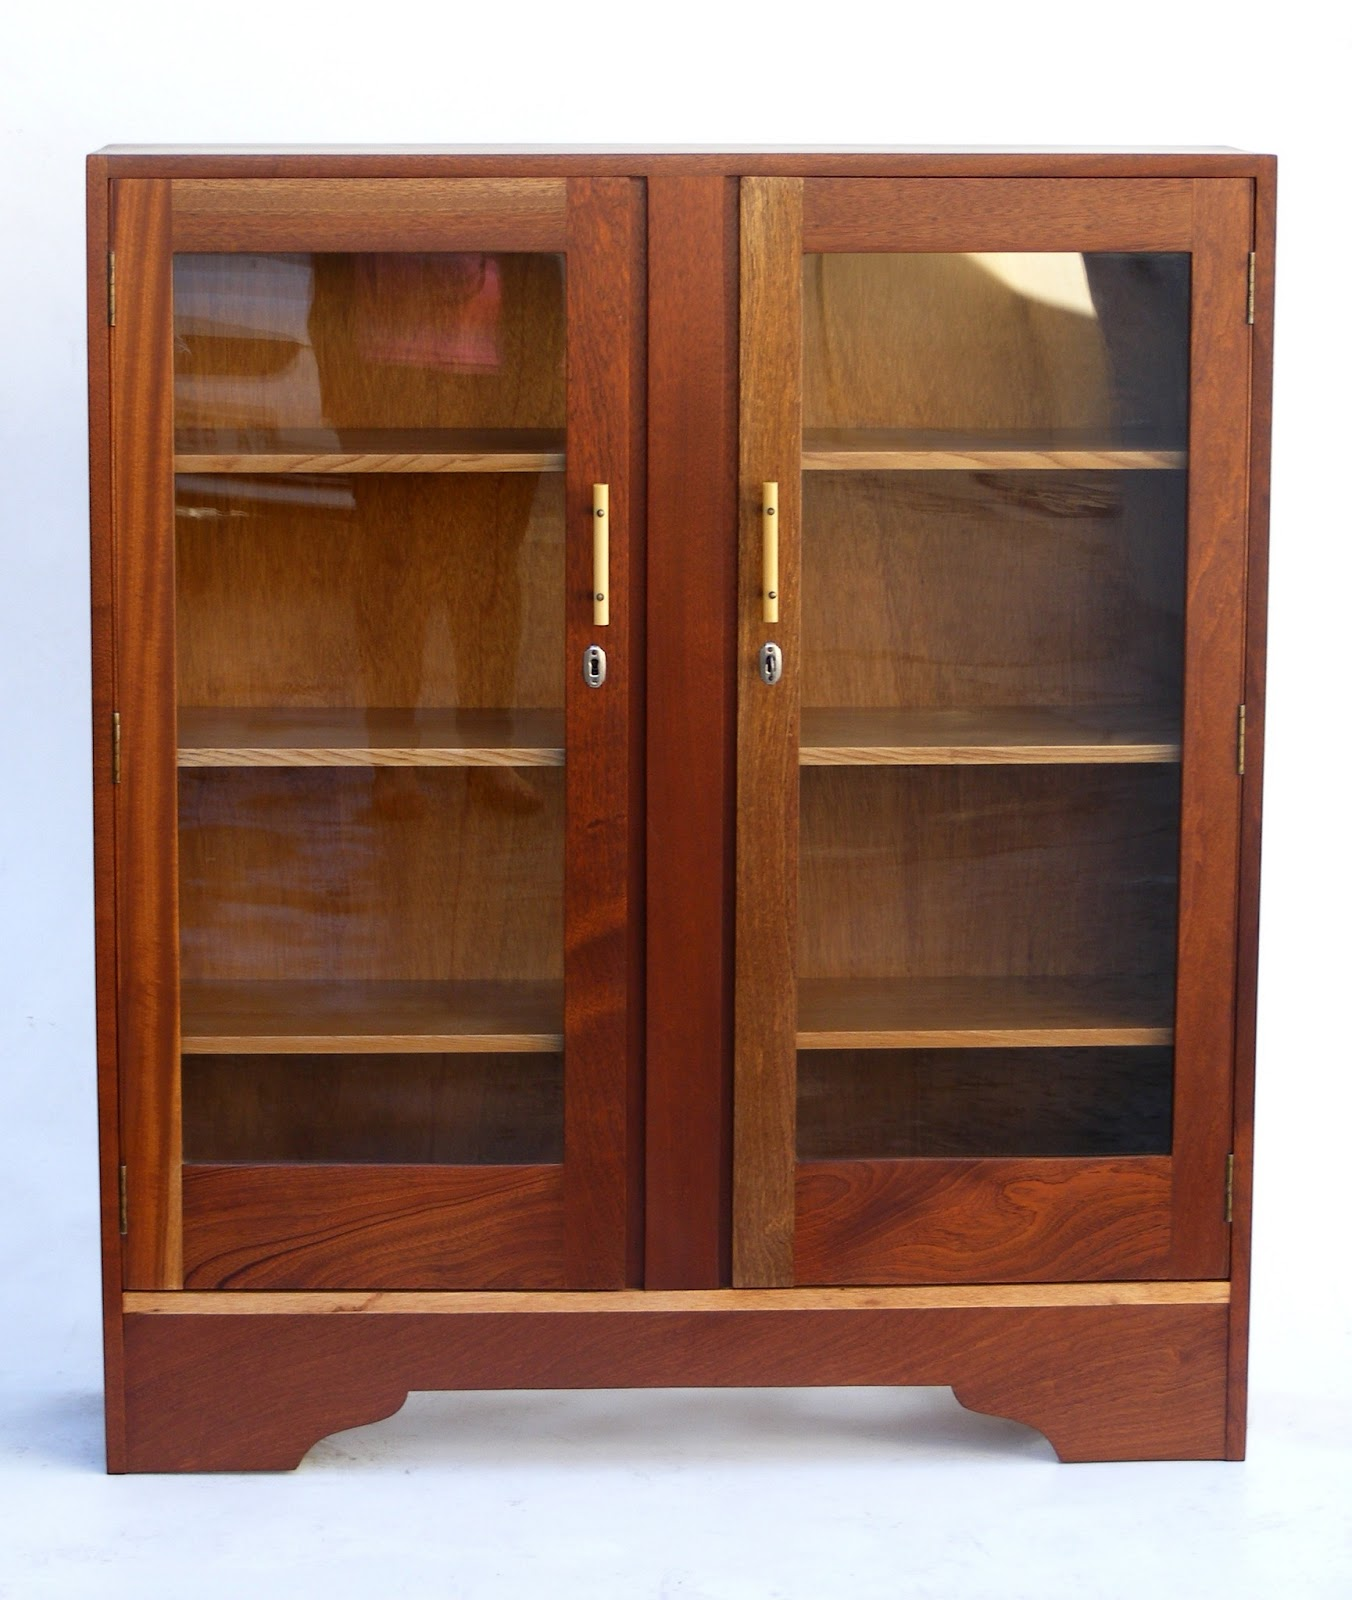 #A47827 VAMP FURNITURE: New Vintage Furniture And Collectibles Stock At Vamp  with 1352x1600 px of Highly Rated Solid Wood Bookcase With Doors 16001352 picture/photo @ avoidforclosure.info